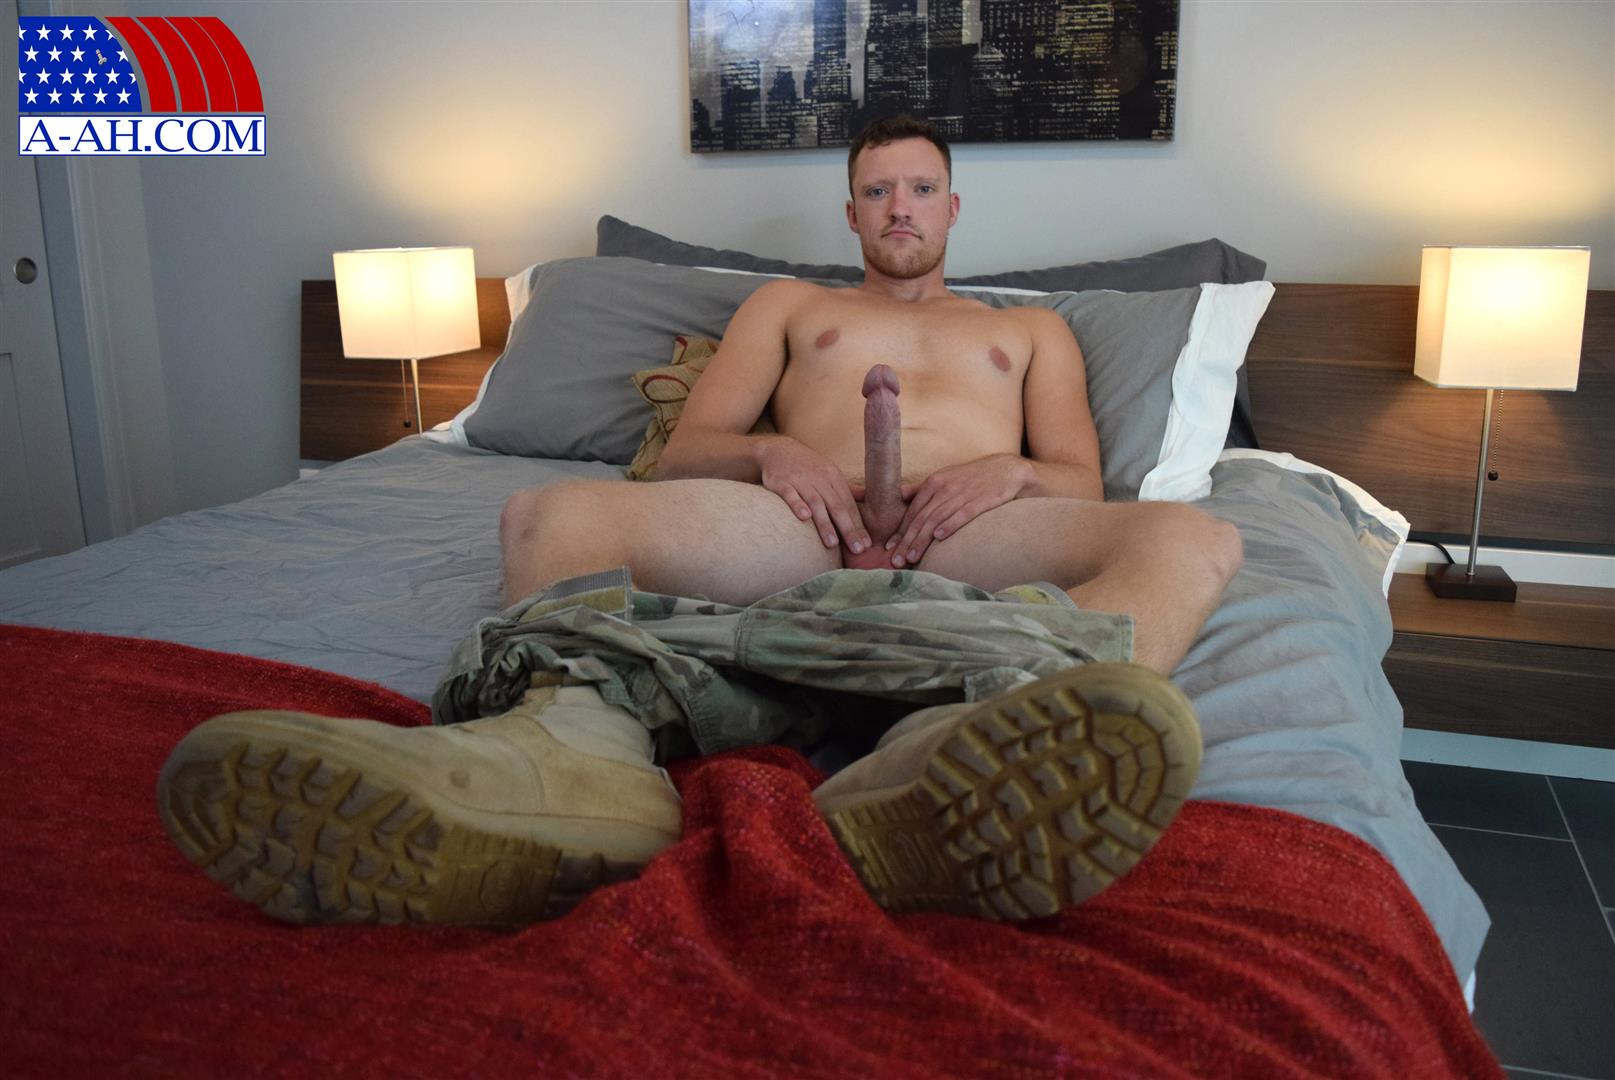 All-American-Heroes-Randy-Army-Sergeant-Naked-With-A-Big-Cock-Amateur-Gay-Porn-04 Army Sergeant Comes Out Of The Closet in Afghanistan